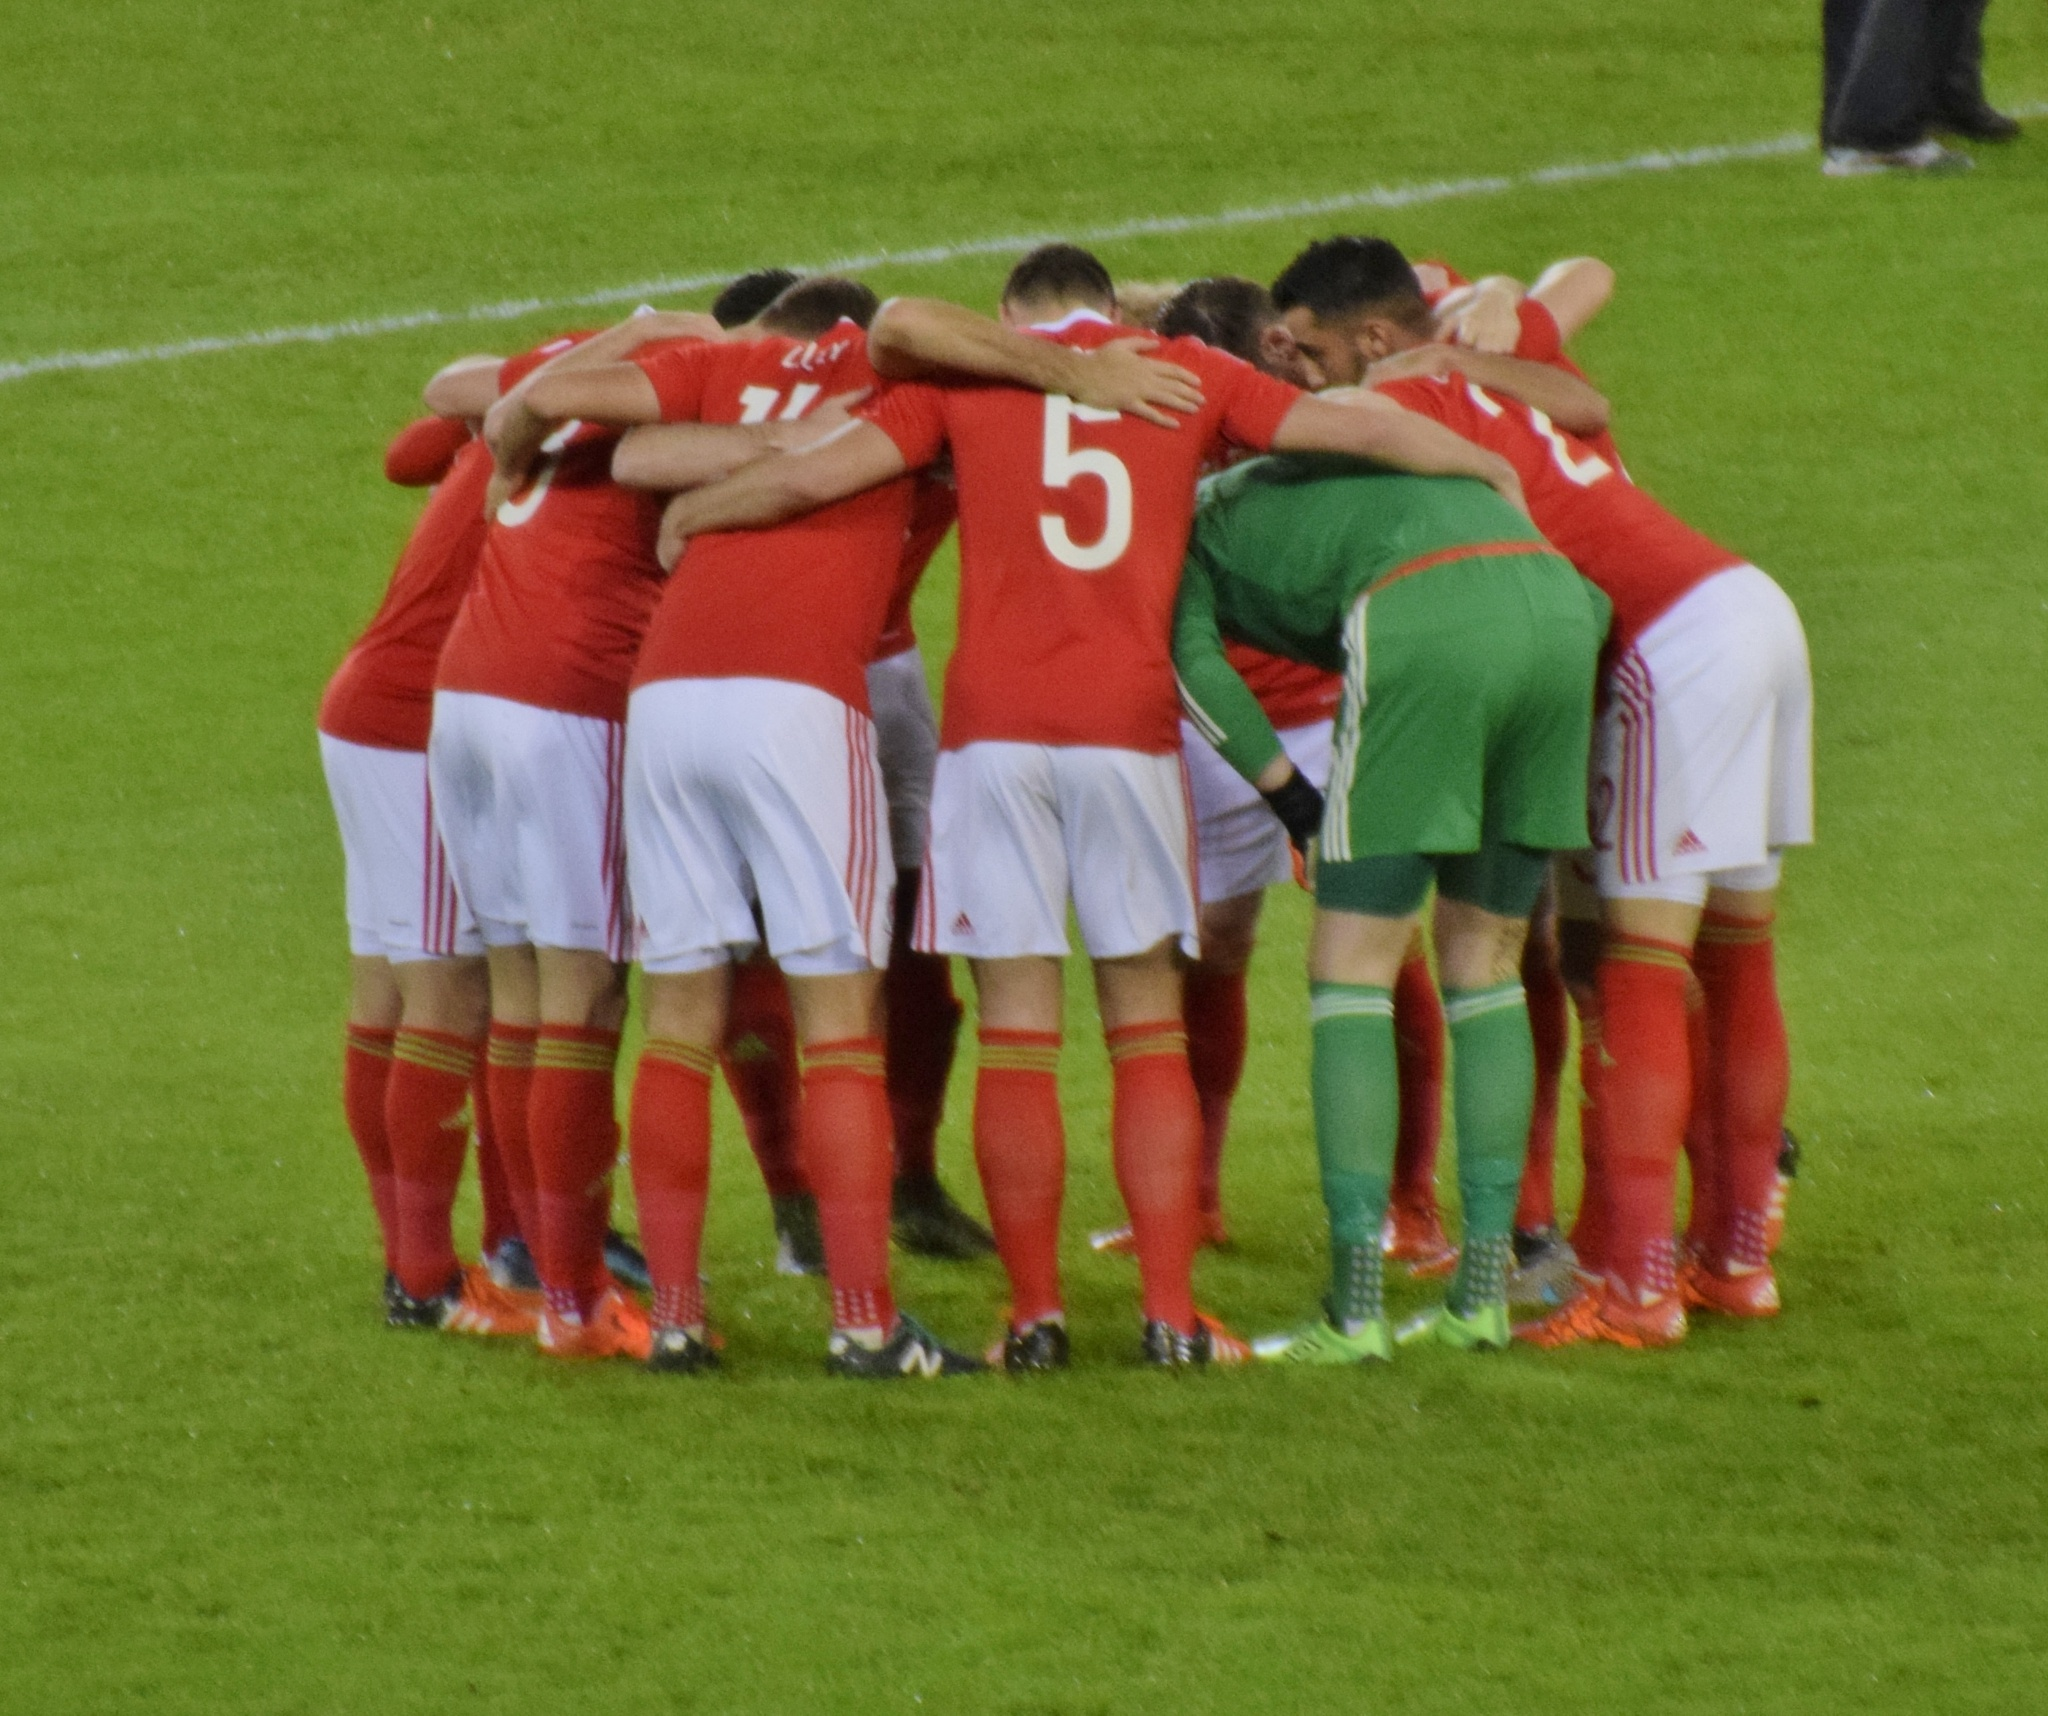 Wales pre match huddle by Abyd